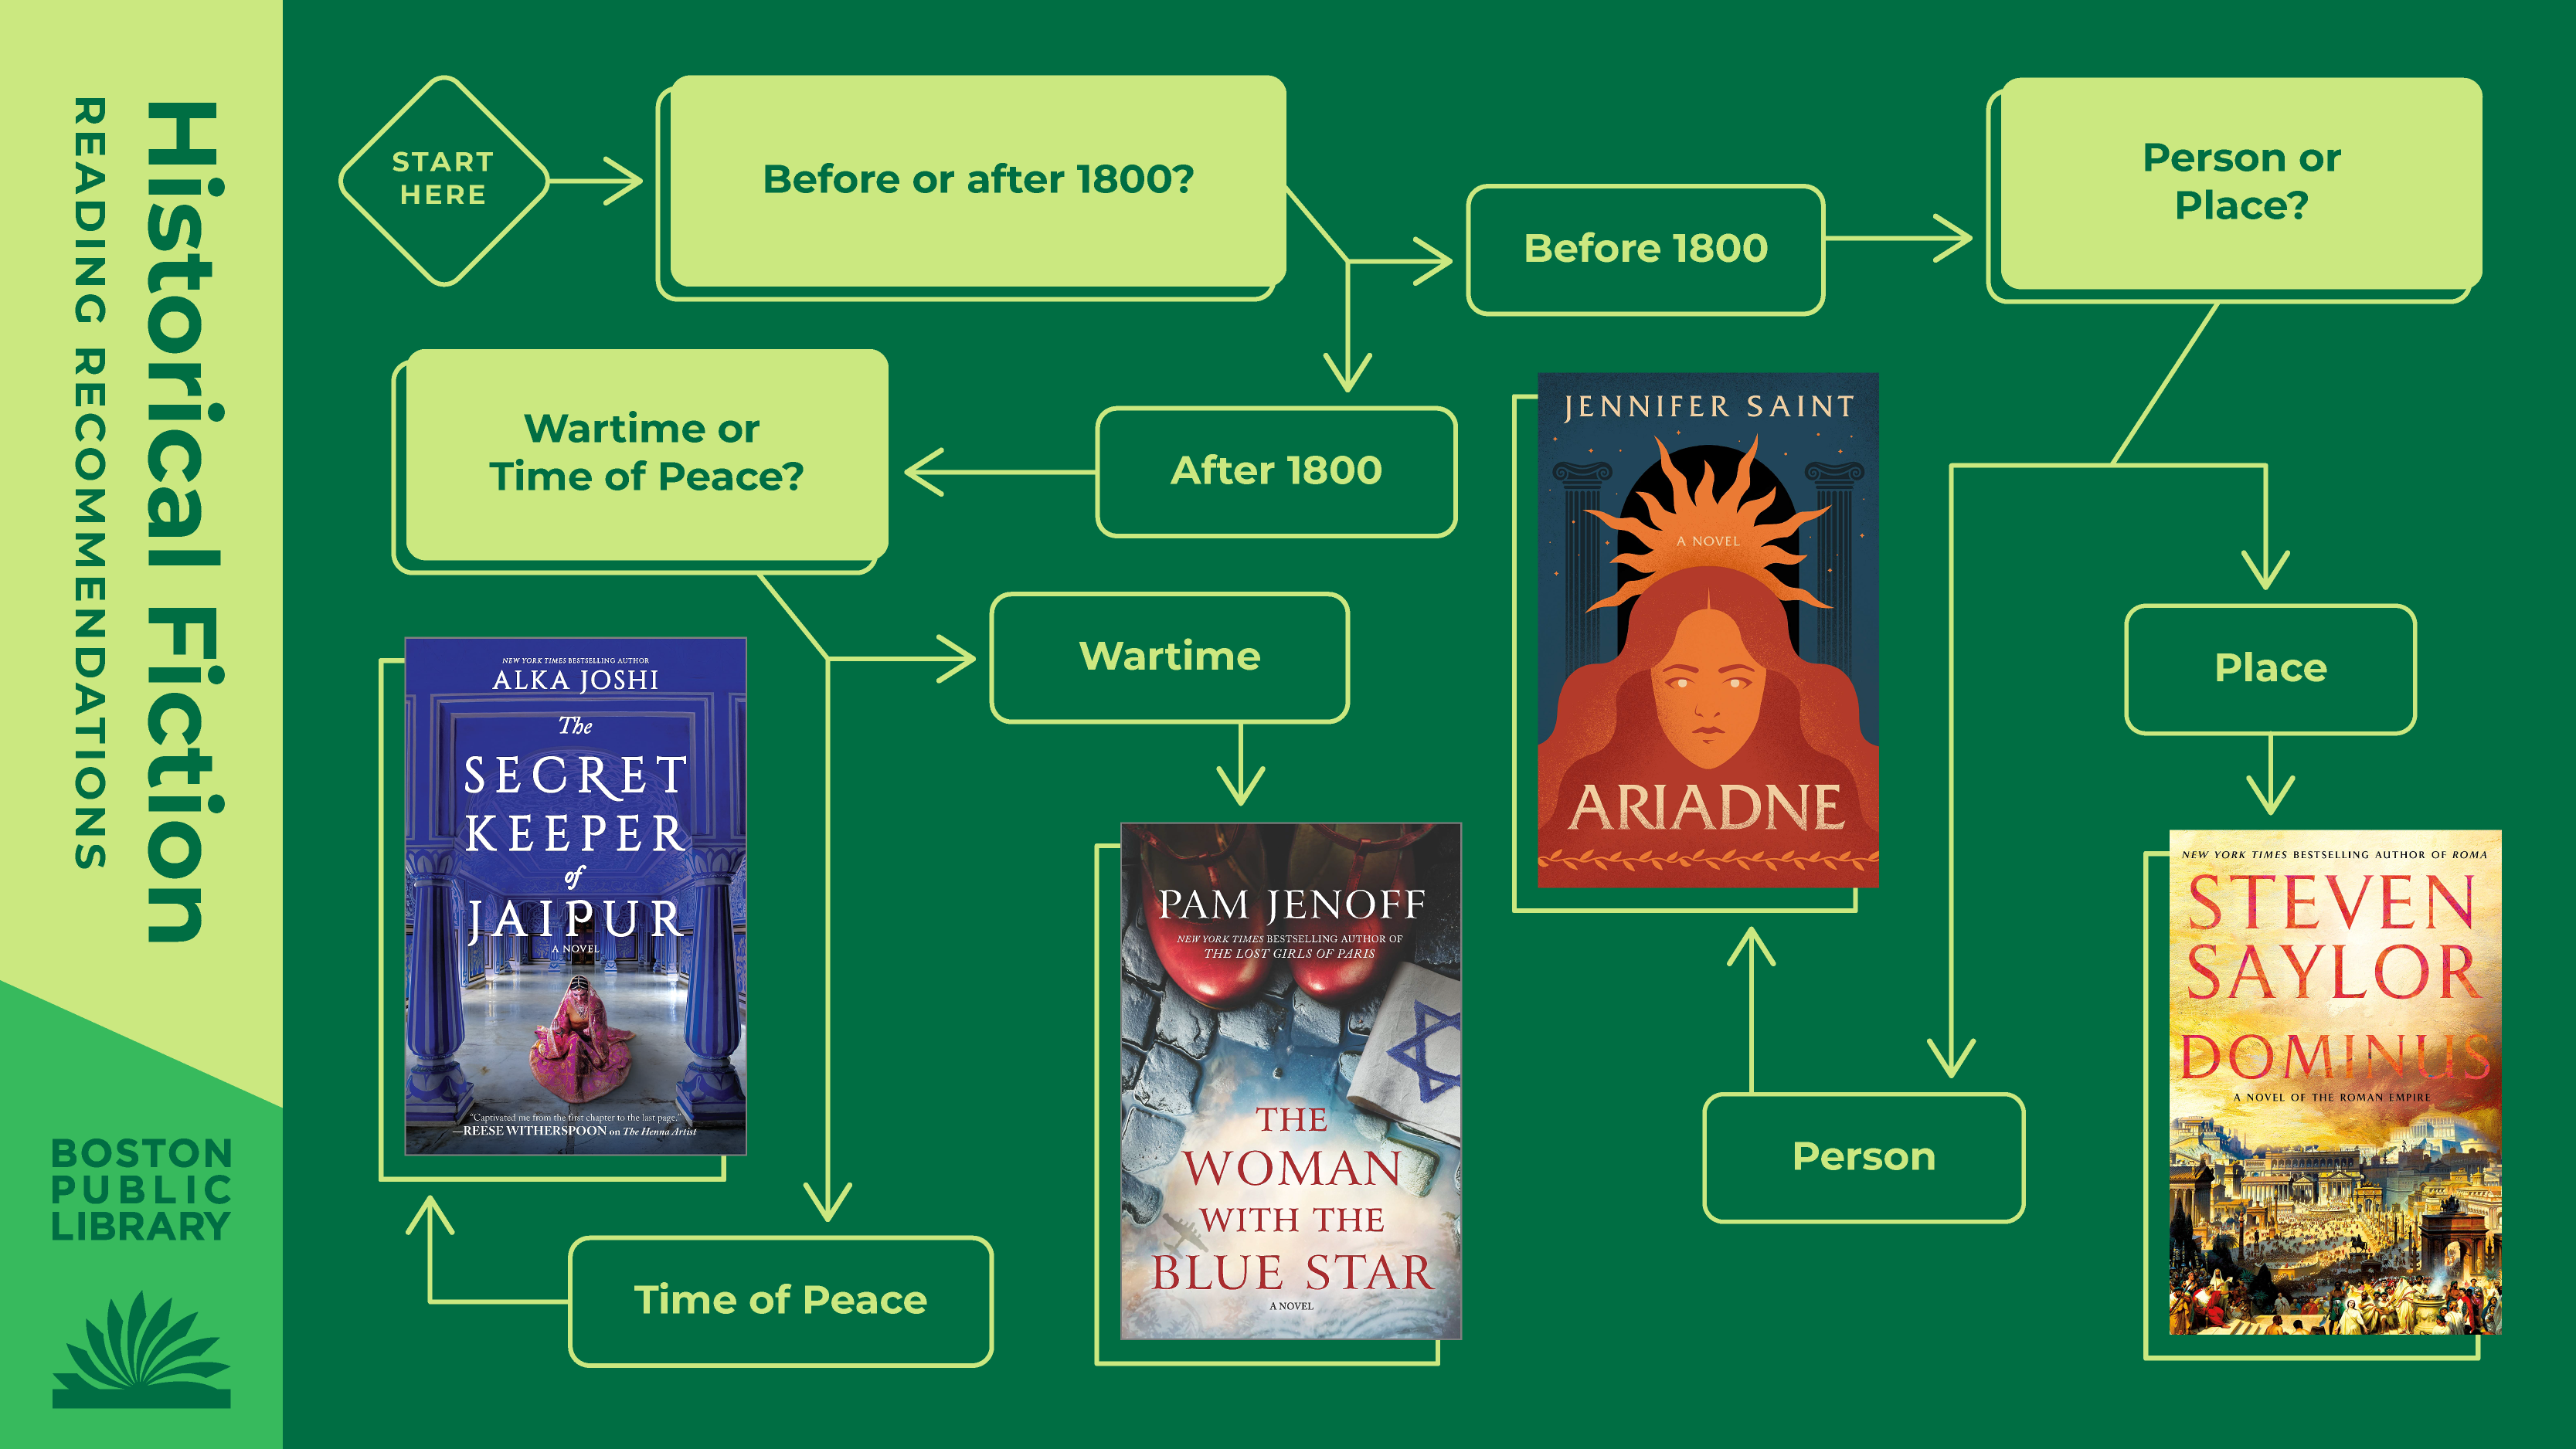 Historical Fiction Reading Recommendations | Before or after 1800? Before 1800 -> Person or Place? Person -> Ariadne by Jennifer Saint, Place -> Dominus by Steven Saylor | After 1800 -> Wartime or Time of Peace? Wartime -> The Woman with the Blue Star by Pam Jenoff, Time of Peace -> The Secret Keeper of Jaipur by Alka Joshi.